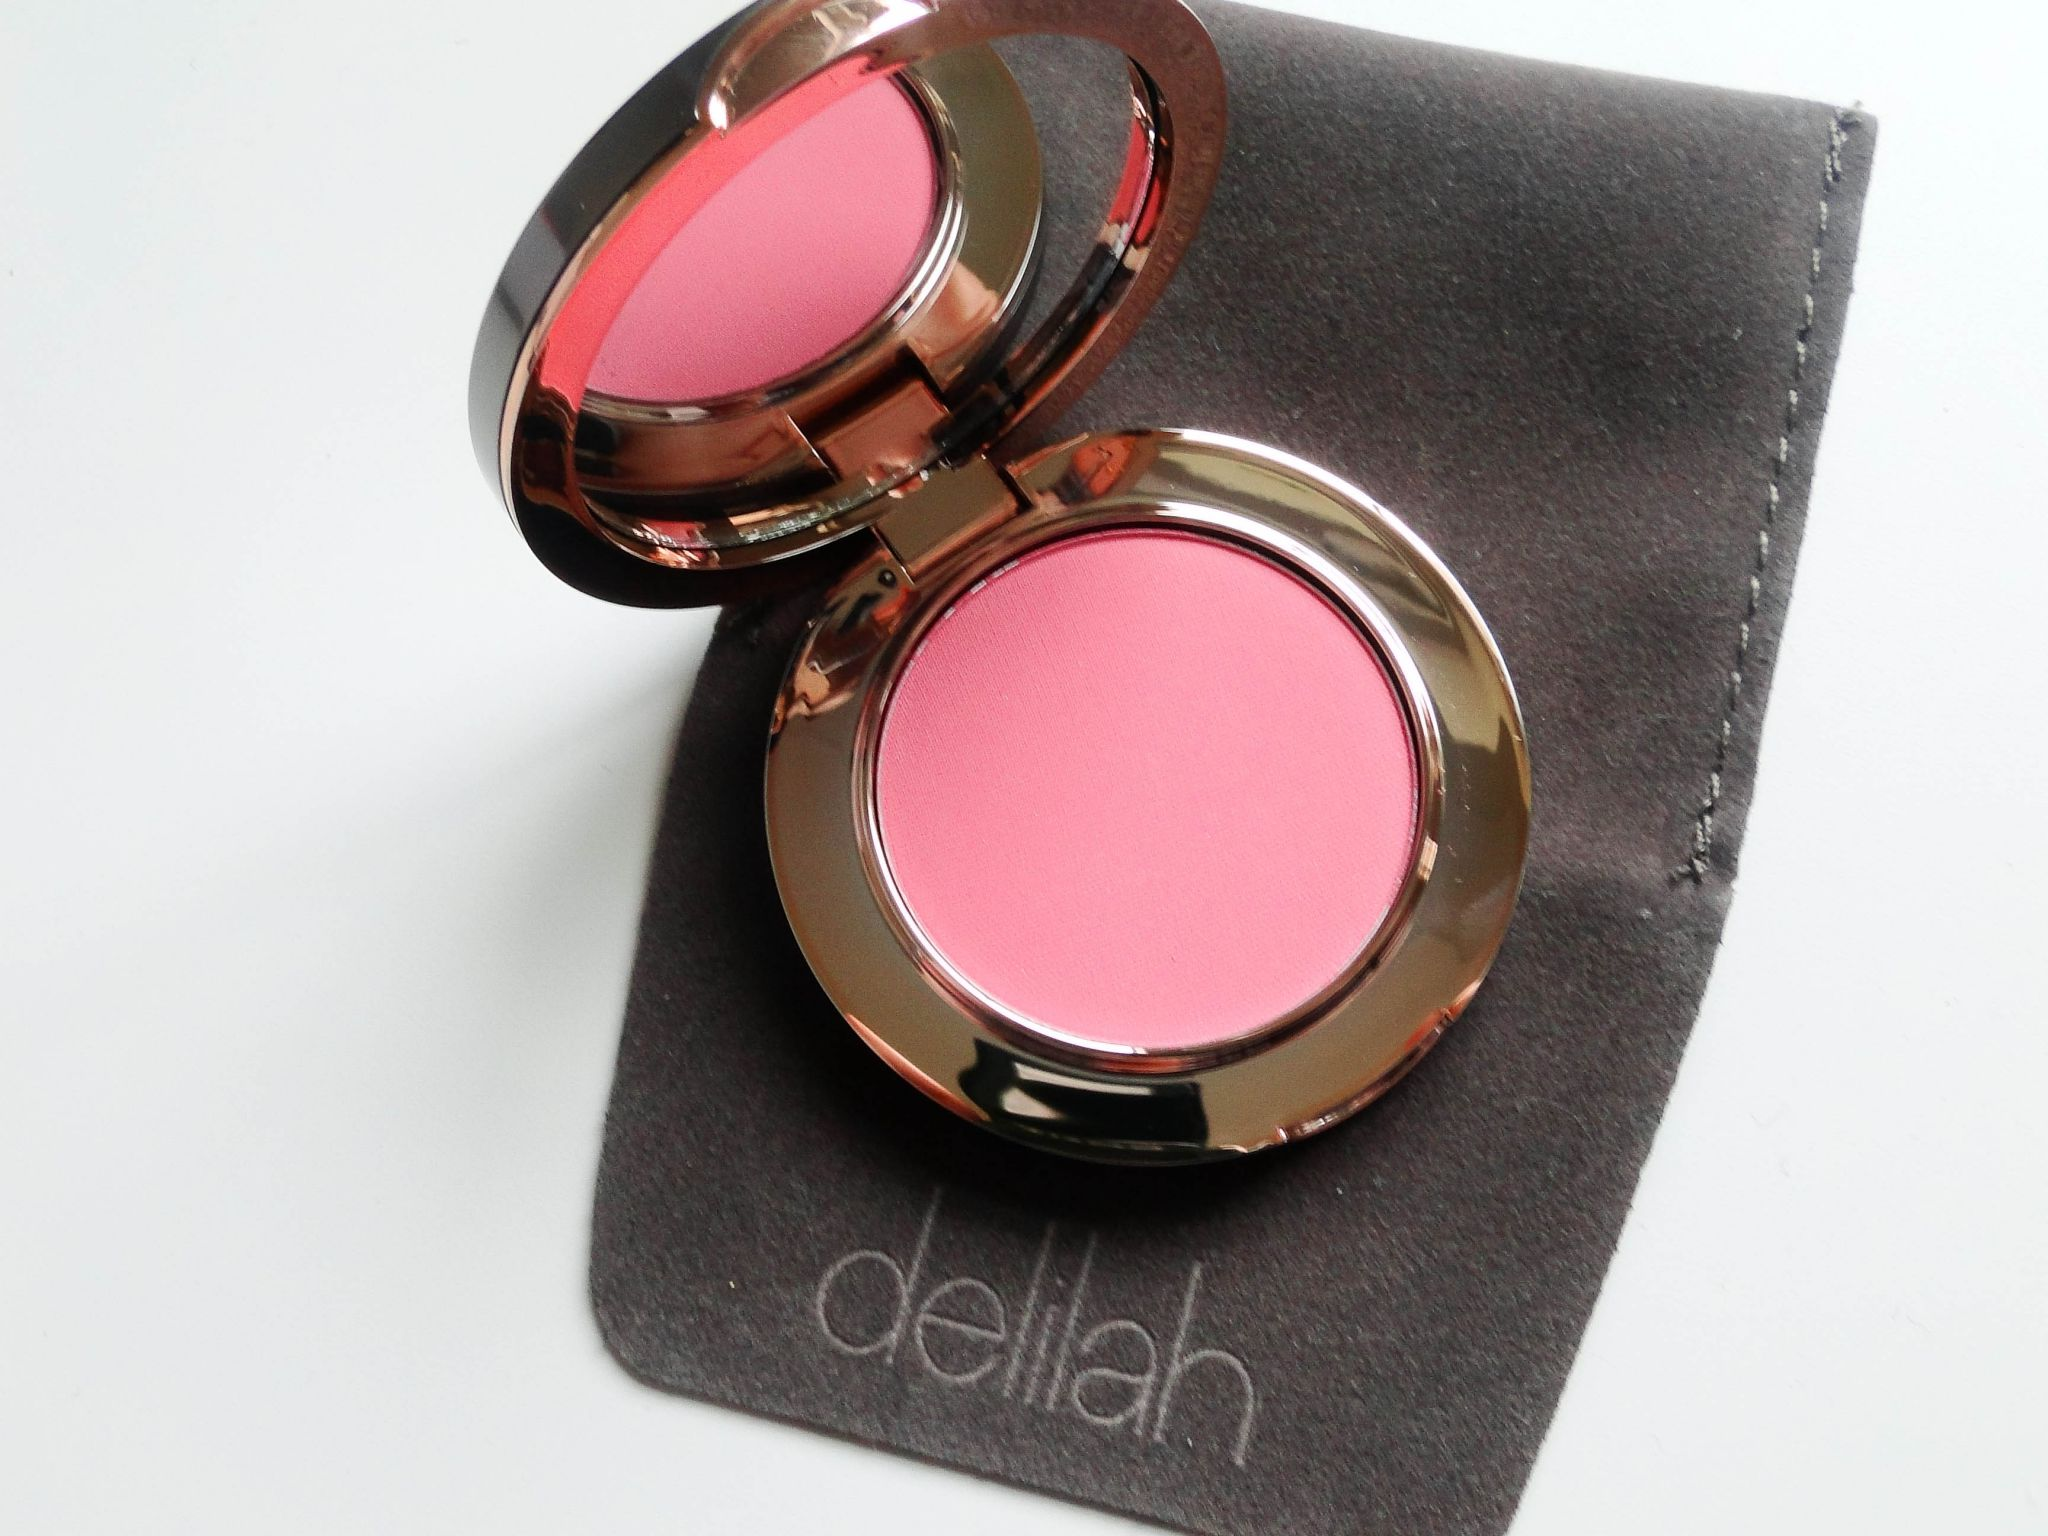 Delilah Cosmetics Blush - Lullaby-5